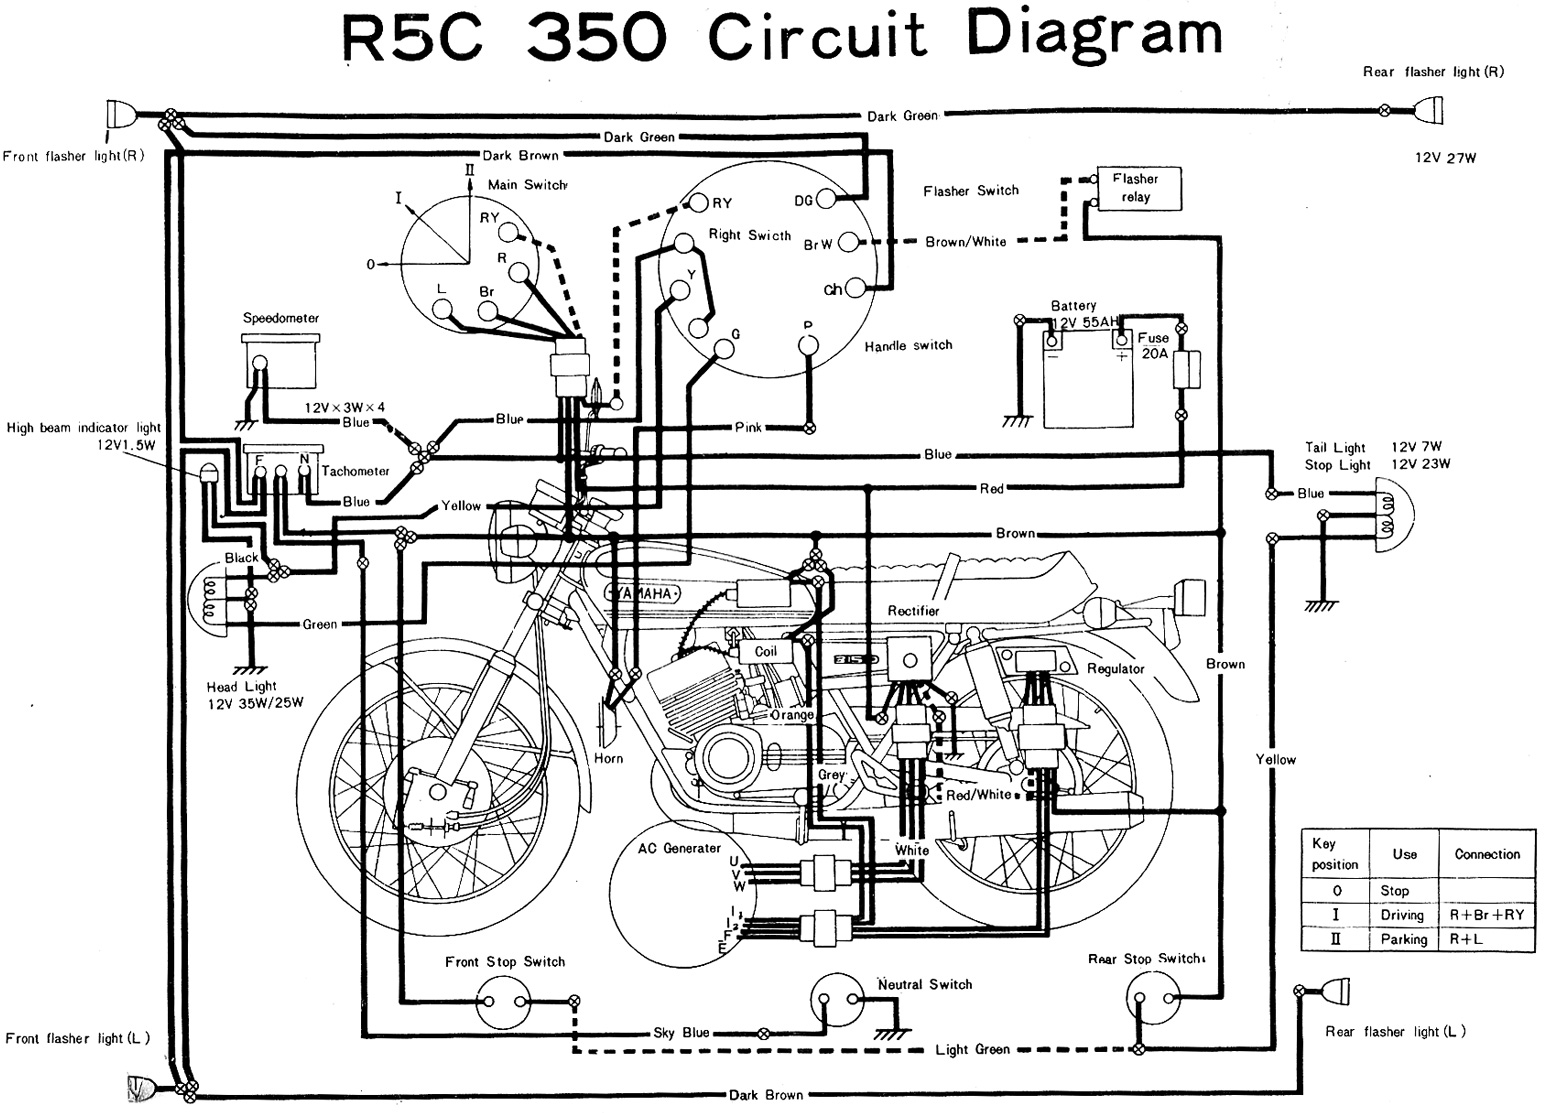 motorcycle wiring schematics diagram wiring diagram online Kawasaki.com Diagrams bike wiring diagram pdf wiring block diagram ceiling fan wiring diagram schematic bike wiring diagram pdf